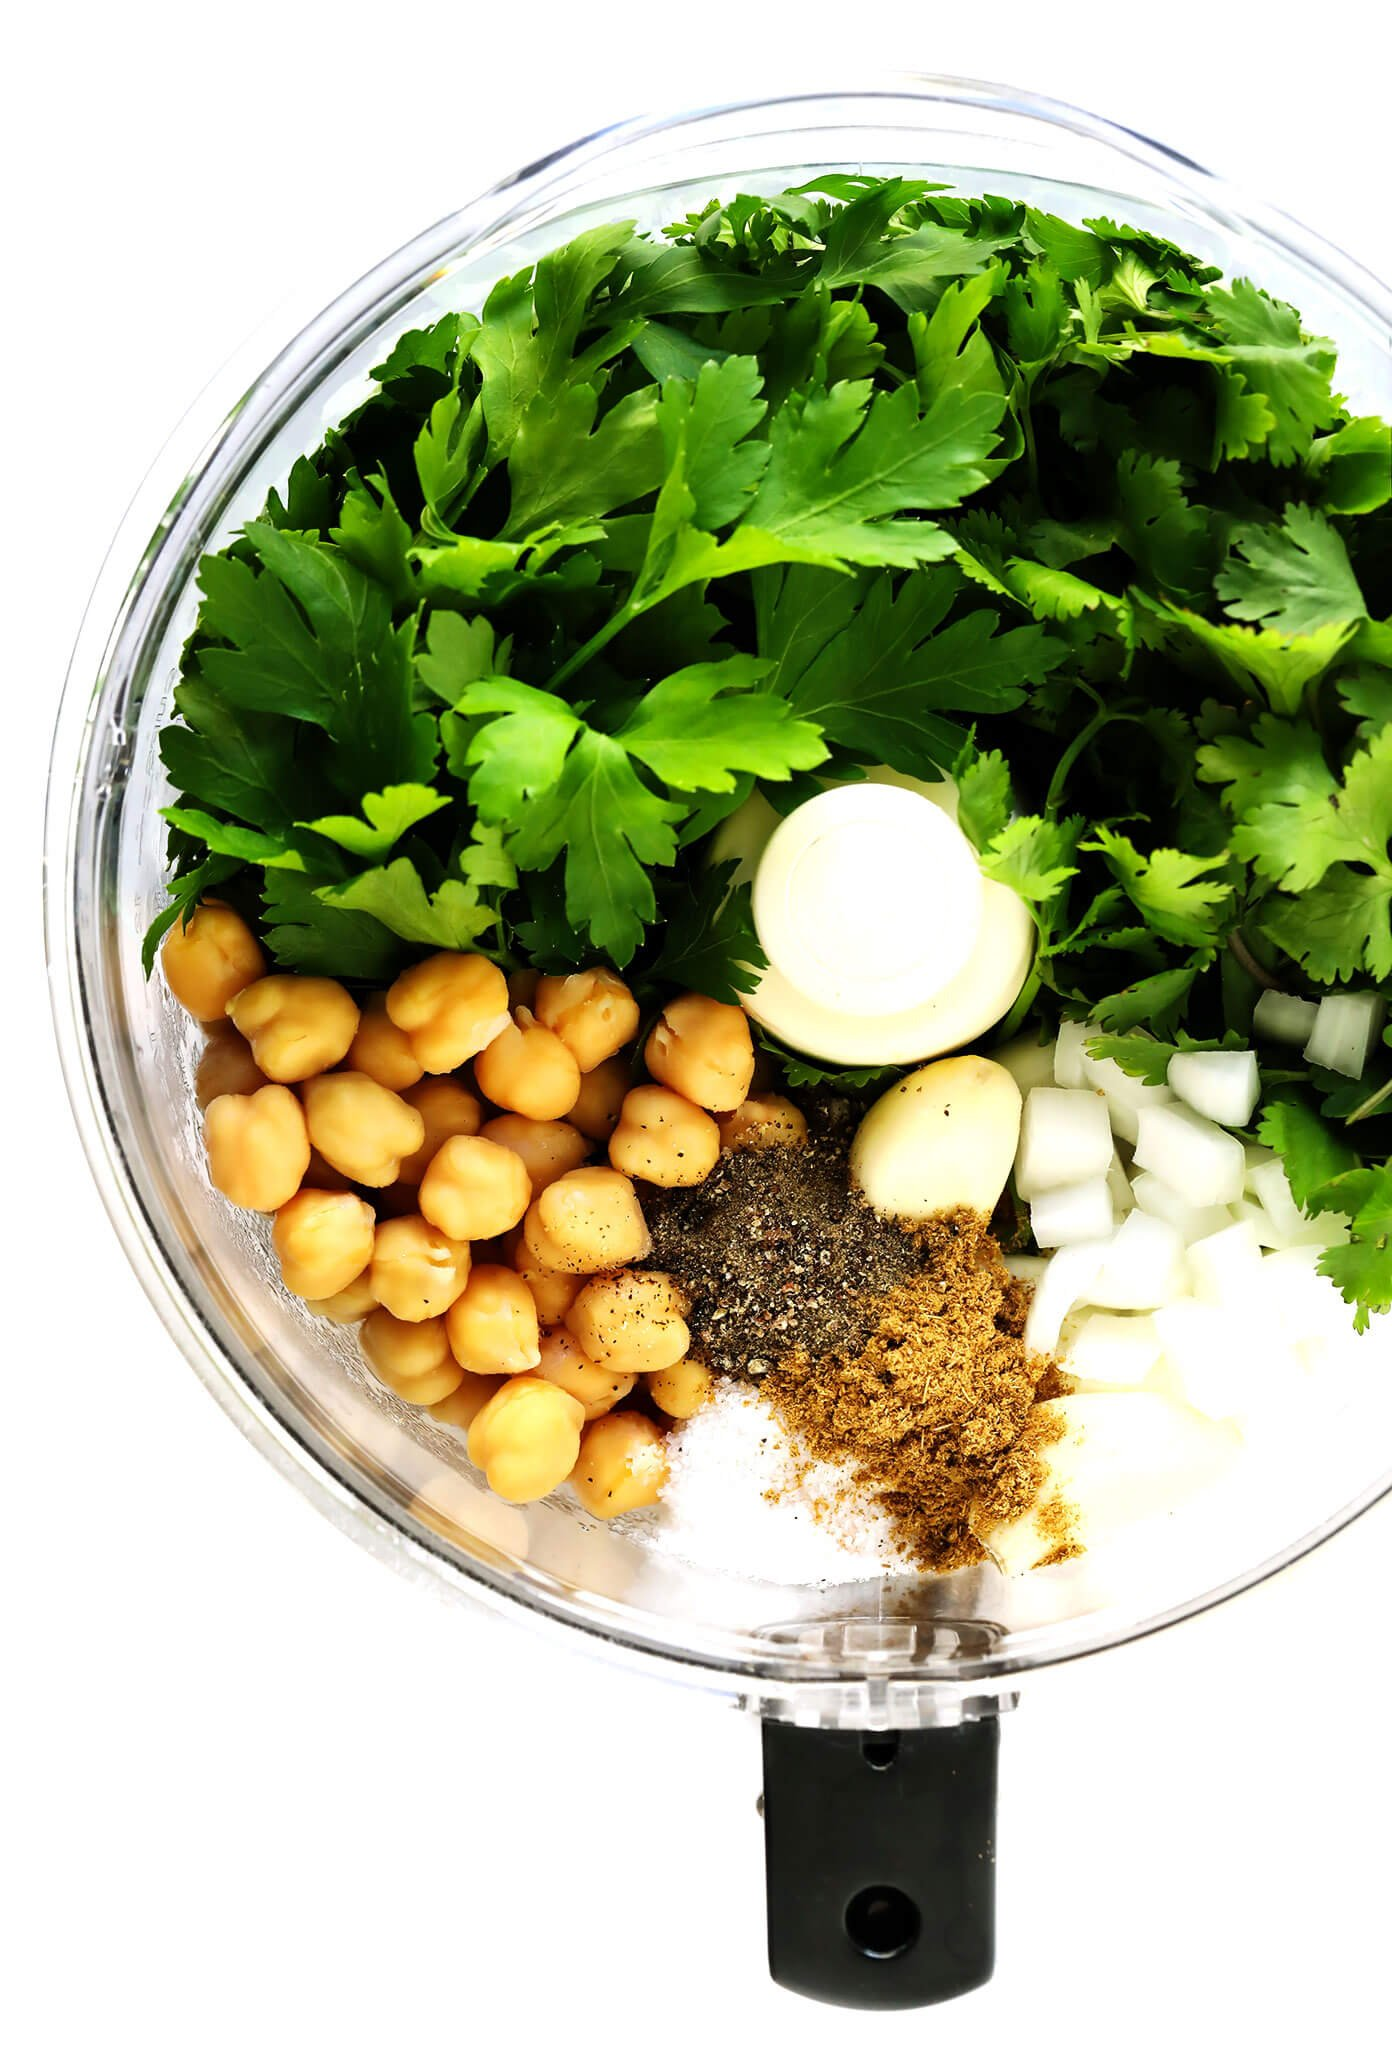 Homemade Falafel Ingredients